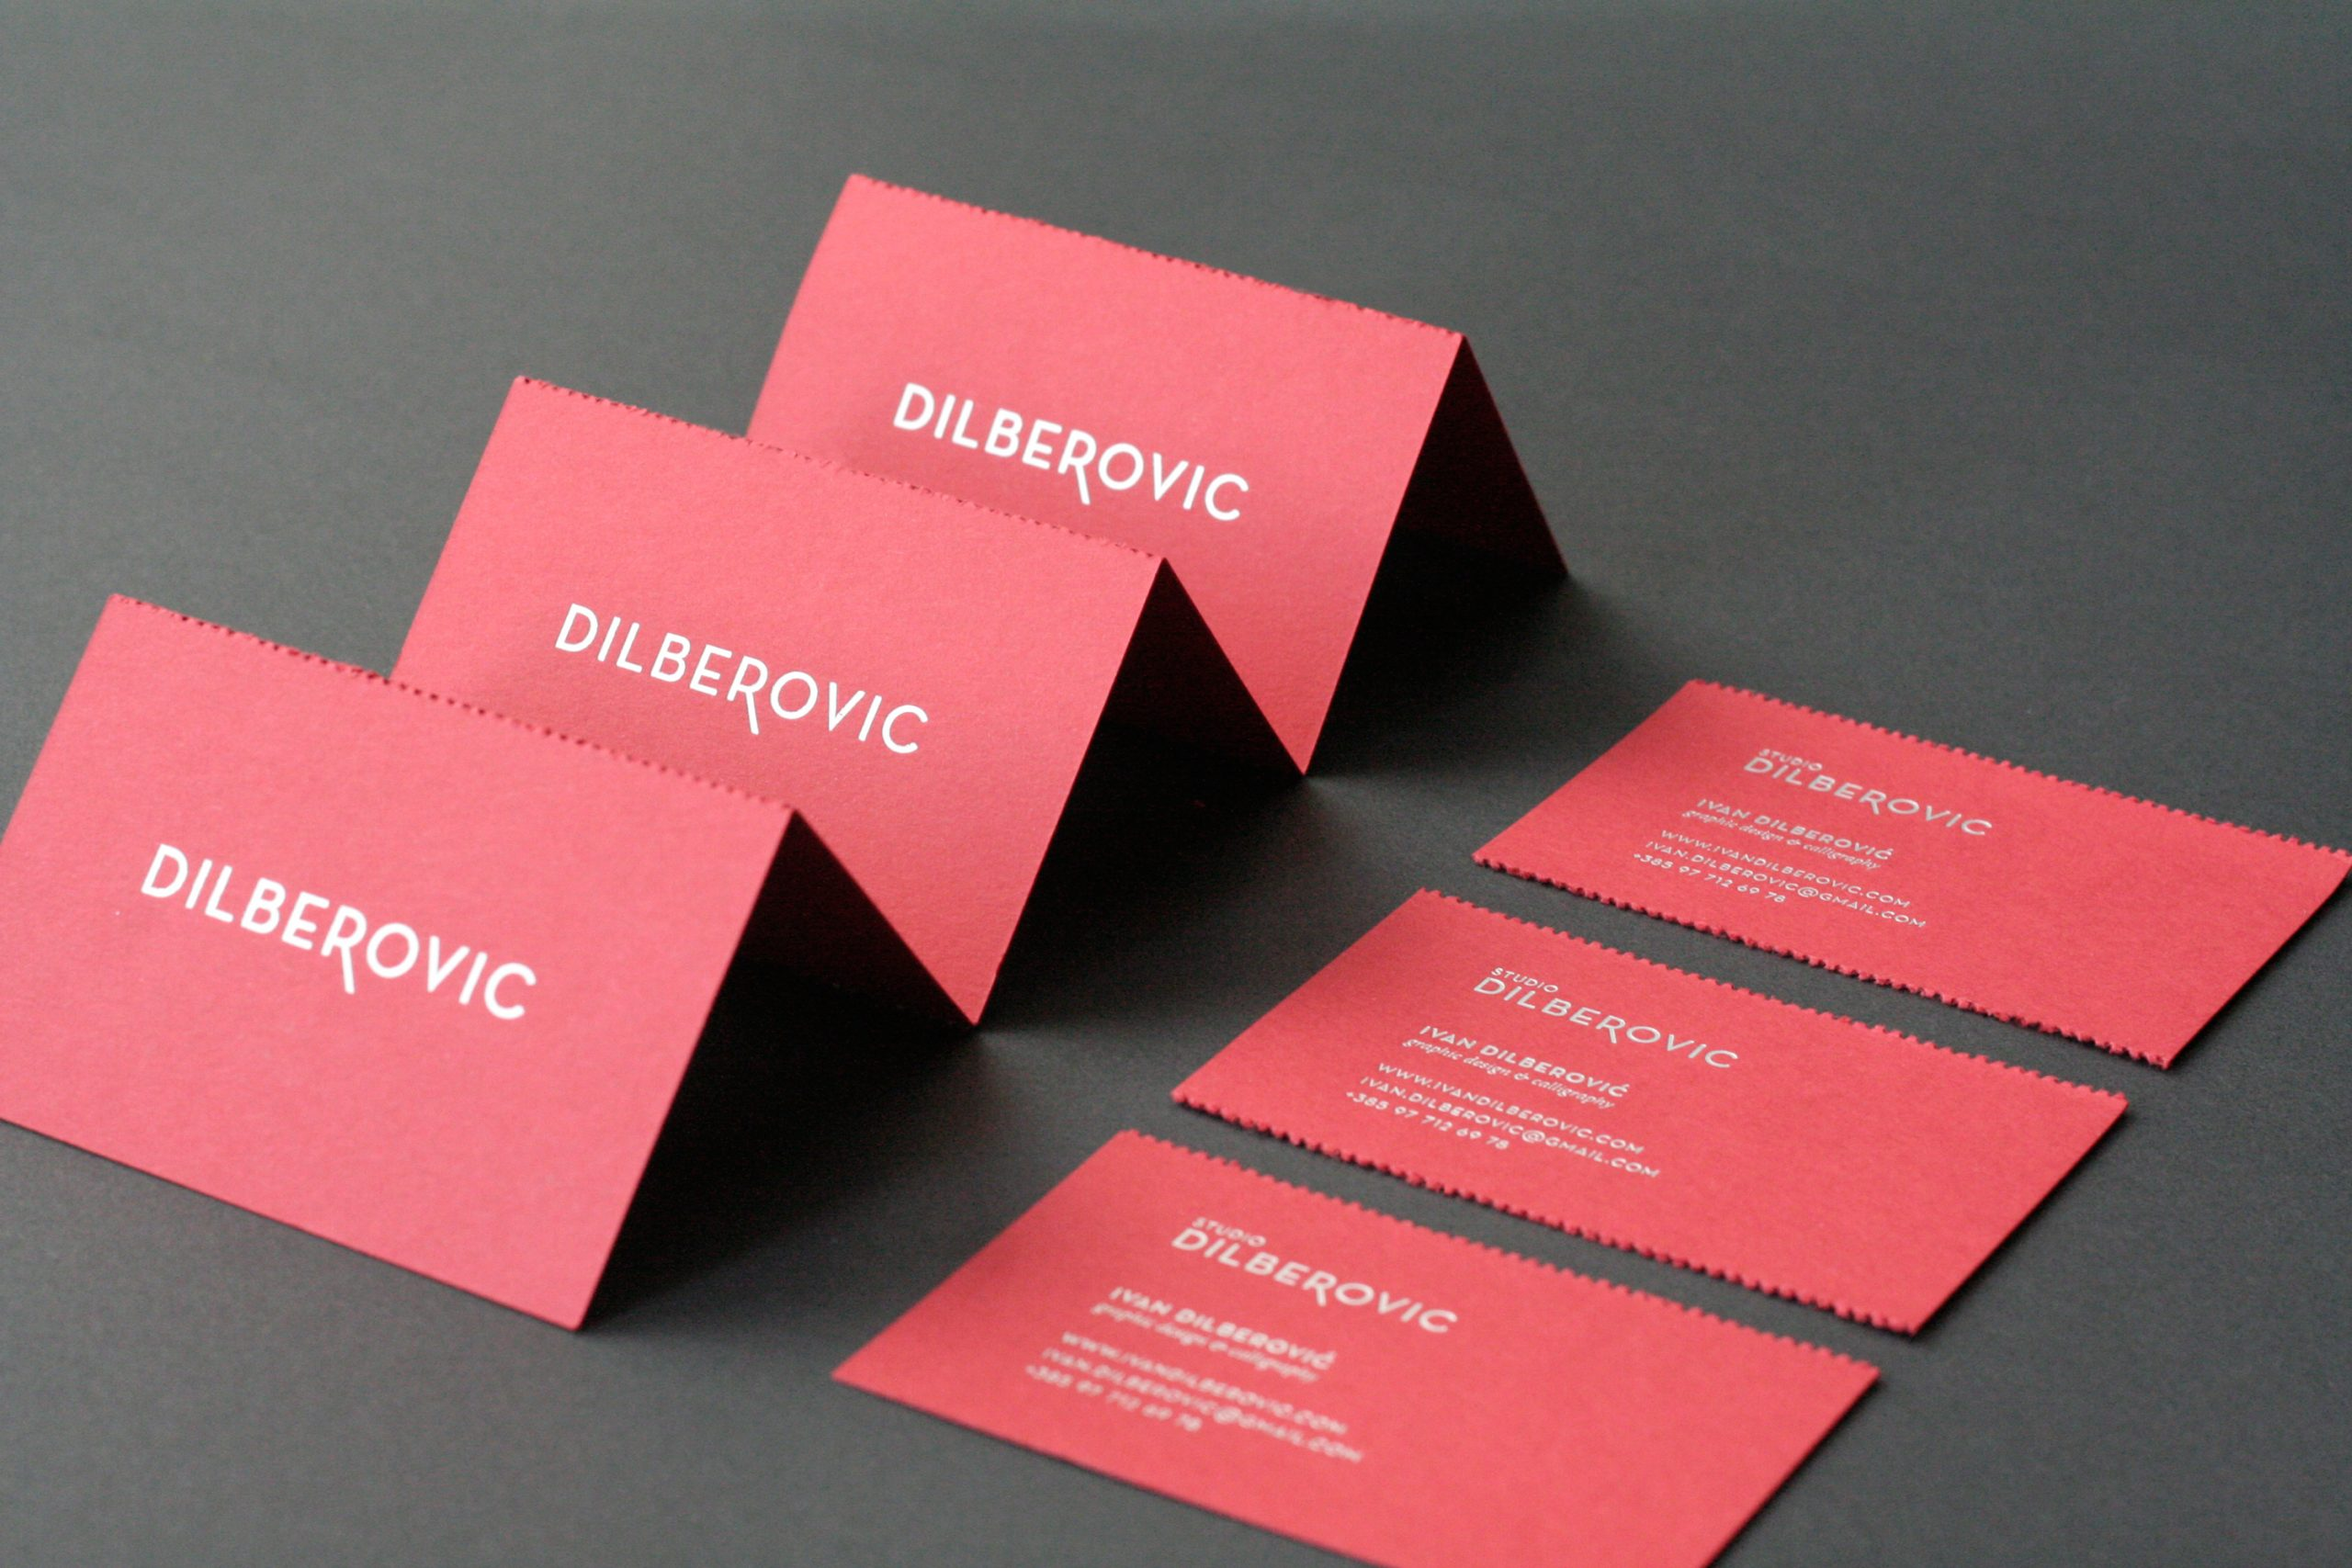 Studio Dilberovic business card